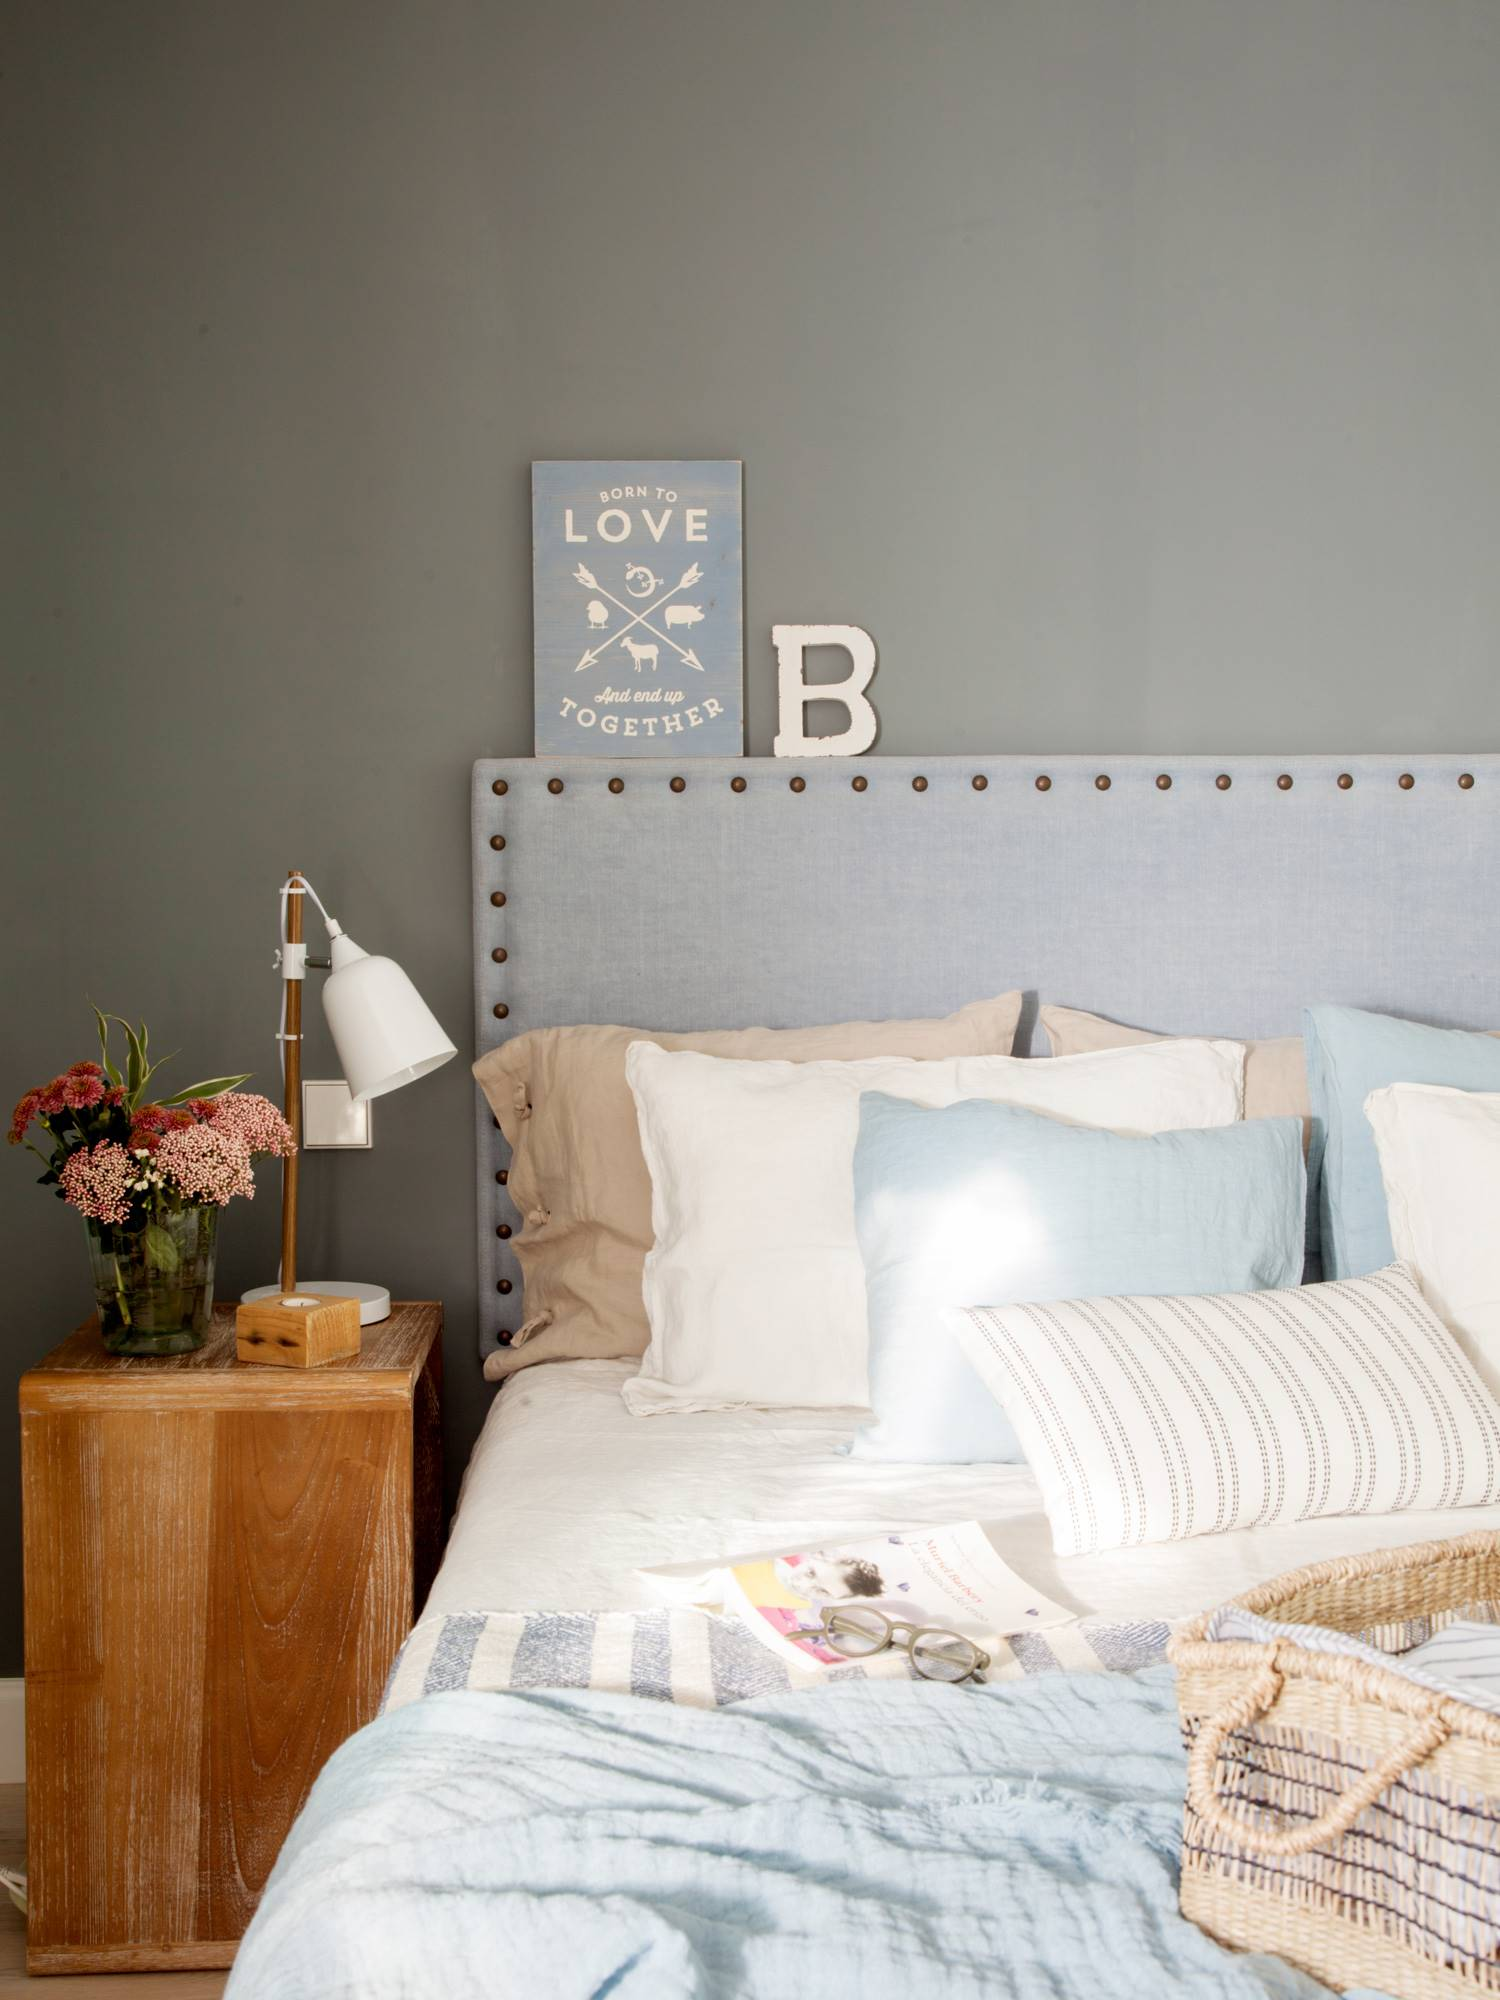 dormitorio con pared del cabecero de color gris_00489047